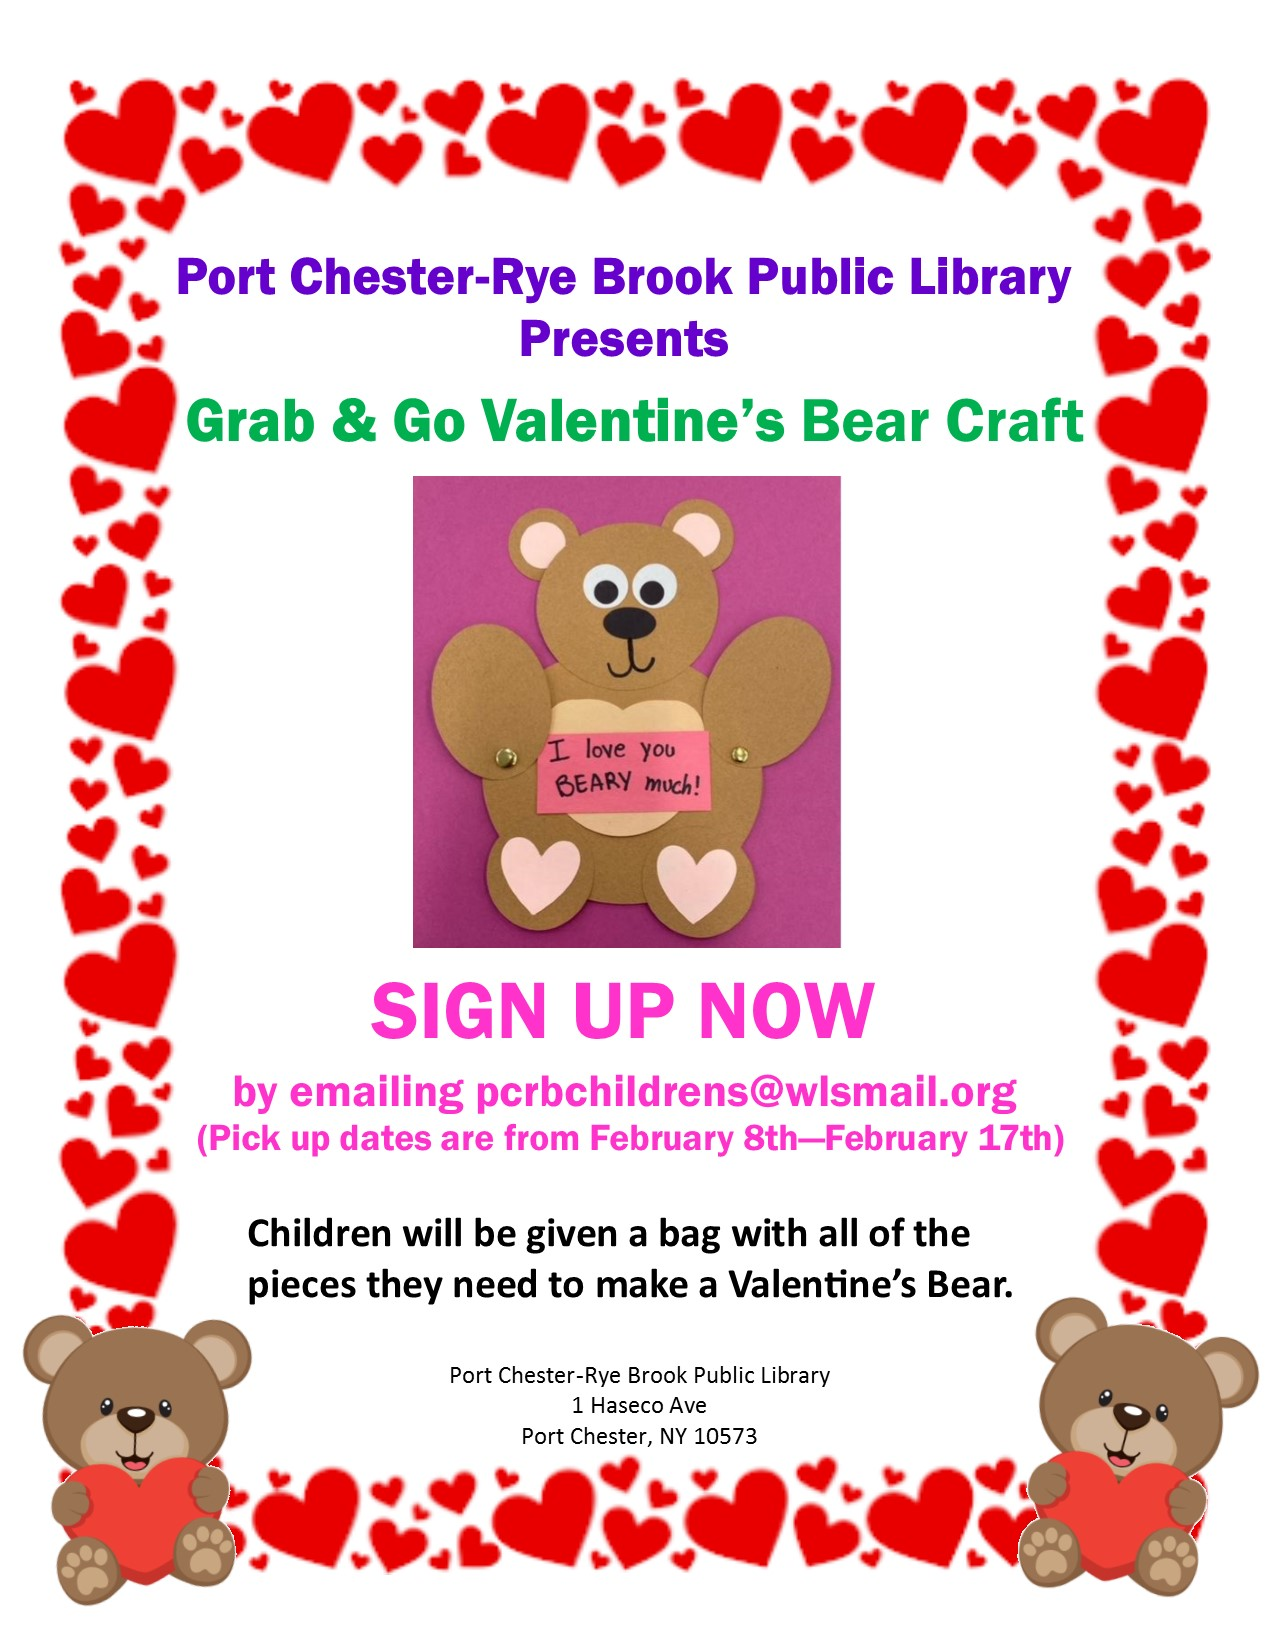 IN PERSON February Grab and Go Valentine's Day Bear Craft Pickup at the Port Chester-Rye Brook Public Library at Port Chester/Rye Brook Library